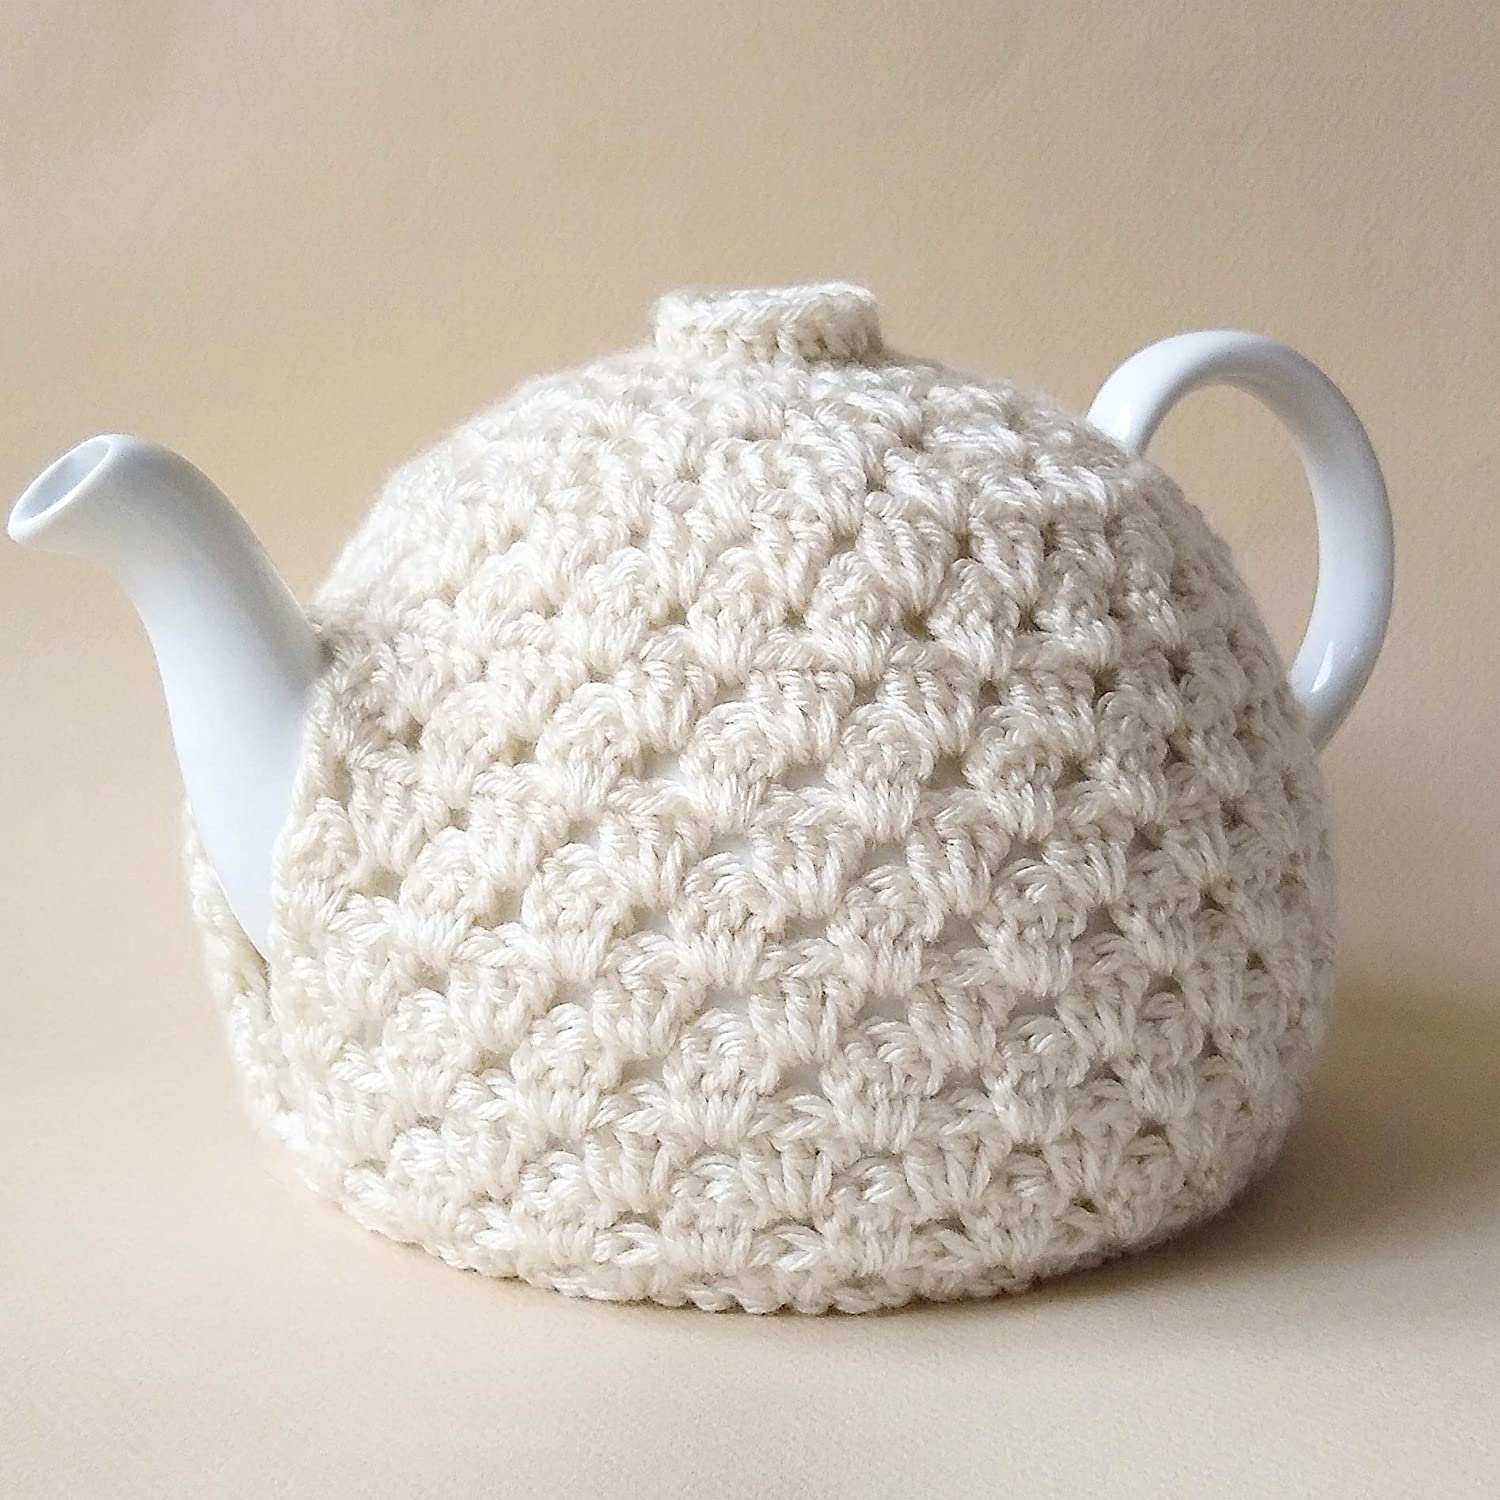 Teapot Cozy Ivory Decorative Cover for Home Decor